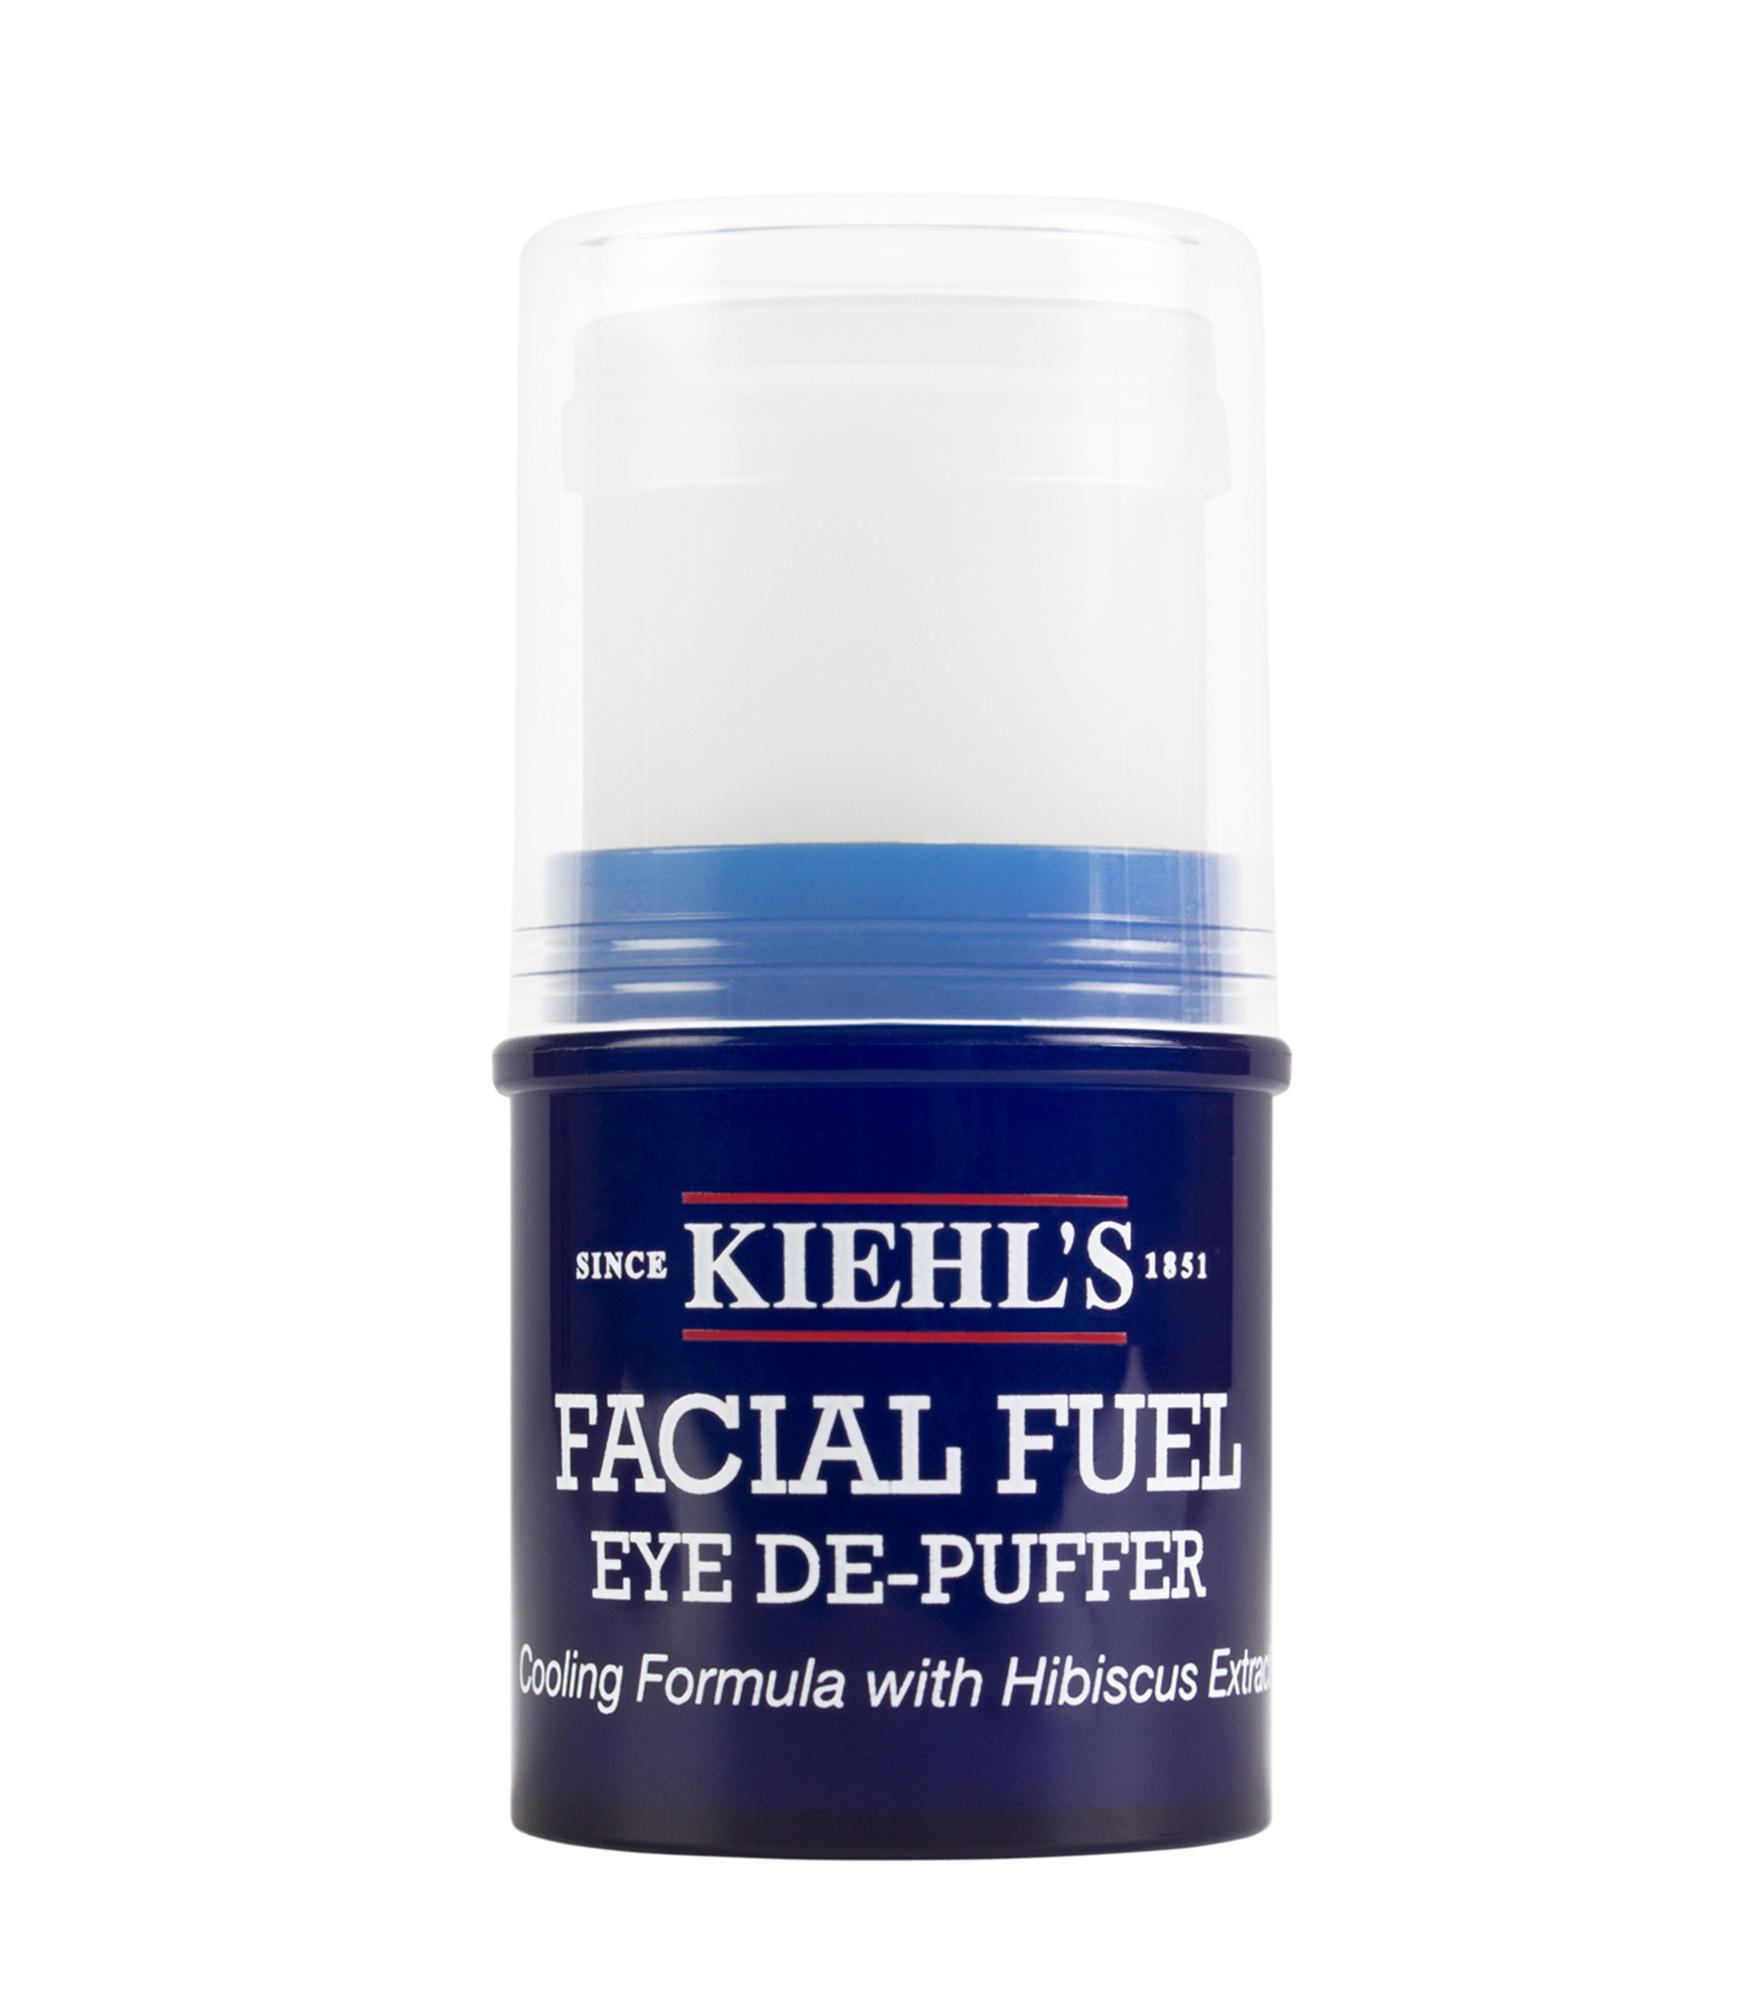 Image result for kiehls eye de puffer